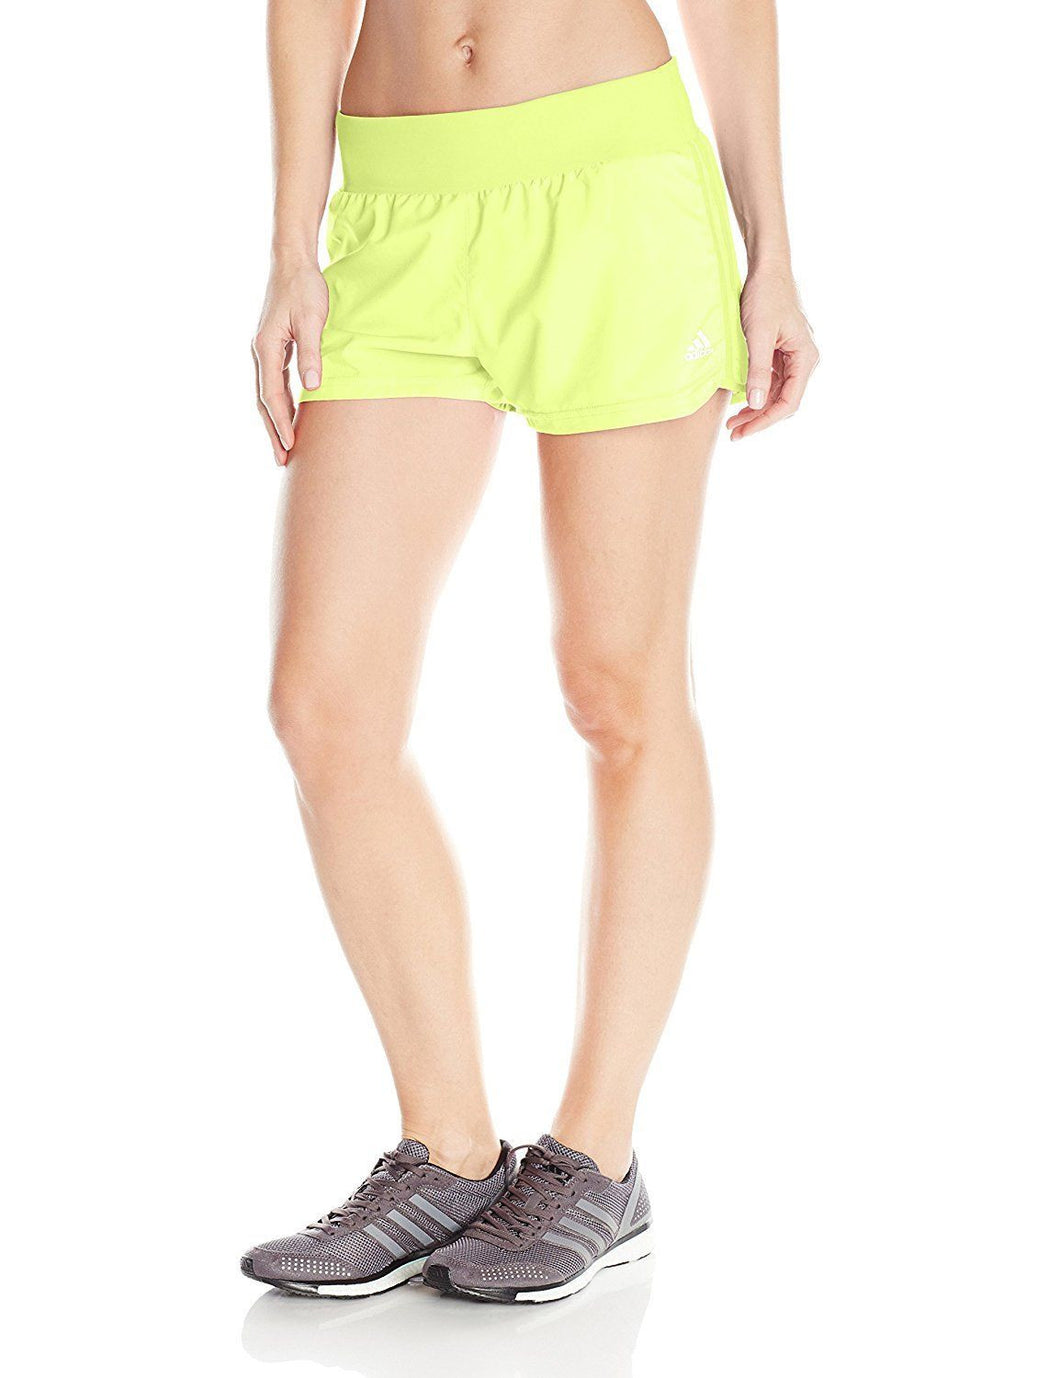 adidas Performance Women's Mia Shorts, Frozen Yellow